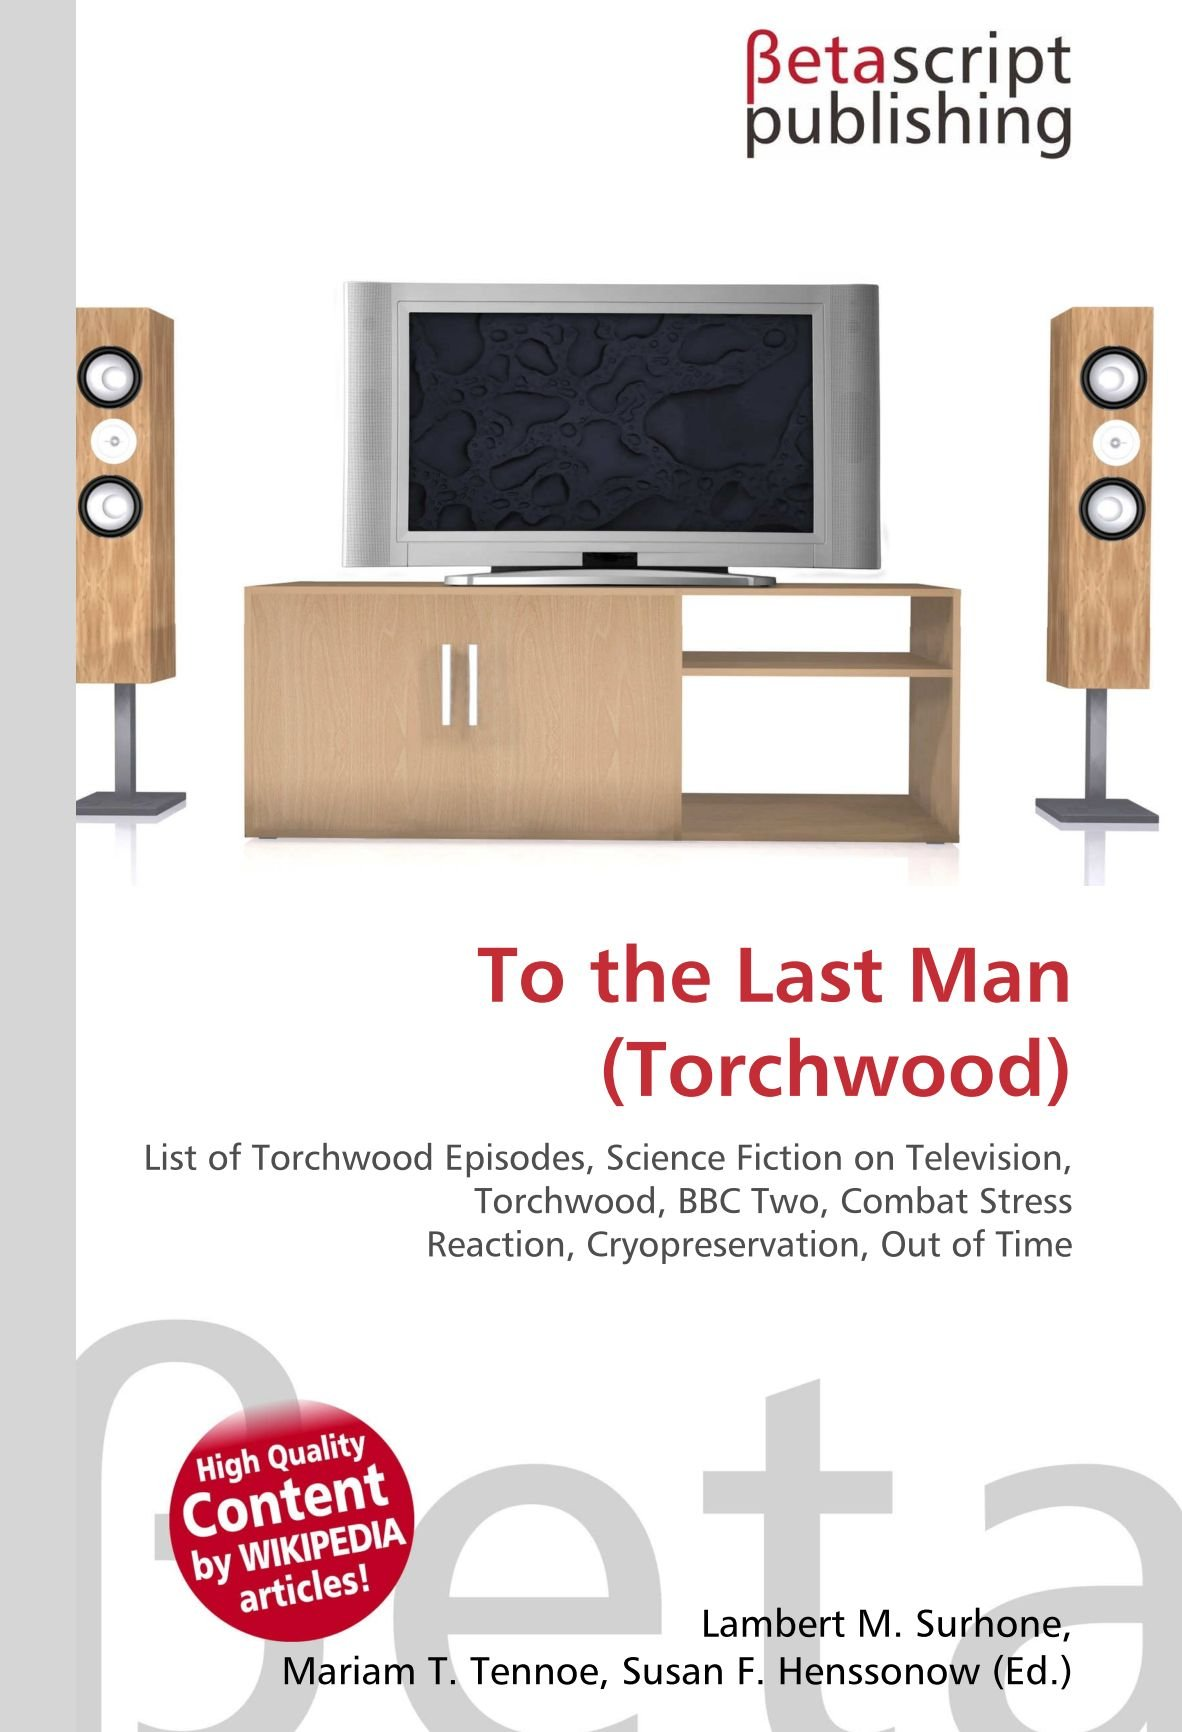 To the Last Man Torchwood : List of Torchwood Episodes, Science Fiction on Television, Torchwood, BBC Two, Combat Stress Reaction, Cryopreservation, Out of Time: Amazon.es: Surhone, Lambert M, Tennoe, Mariam T, Henssonow,